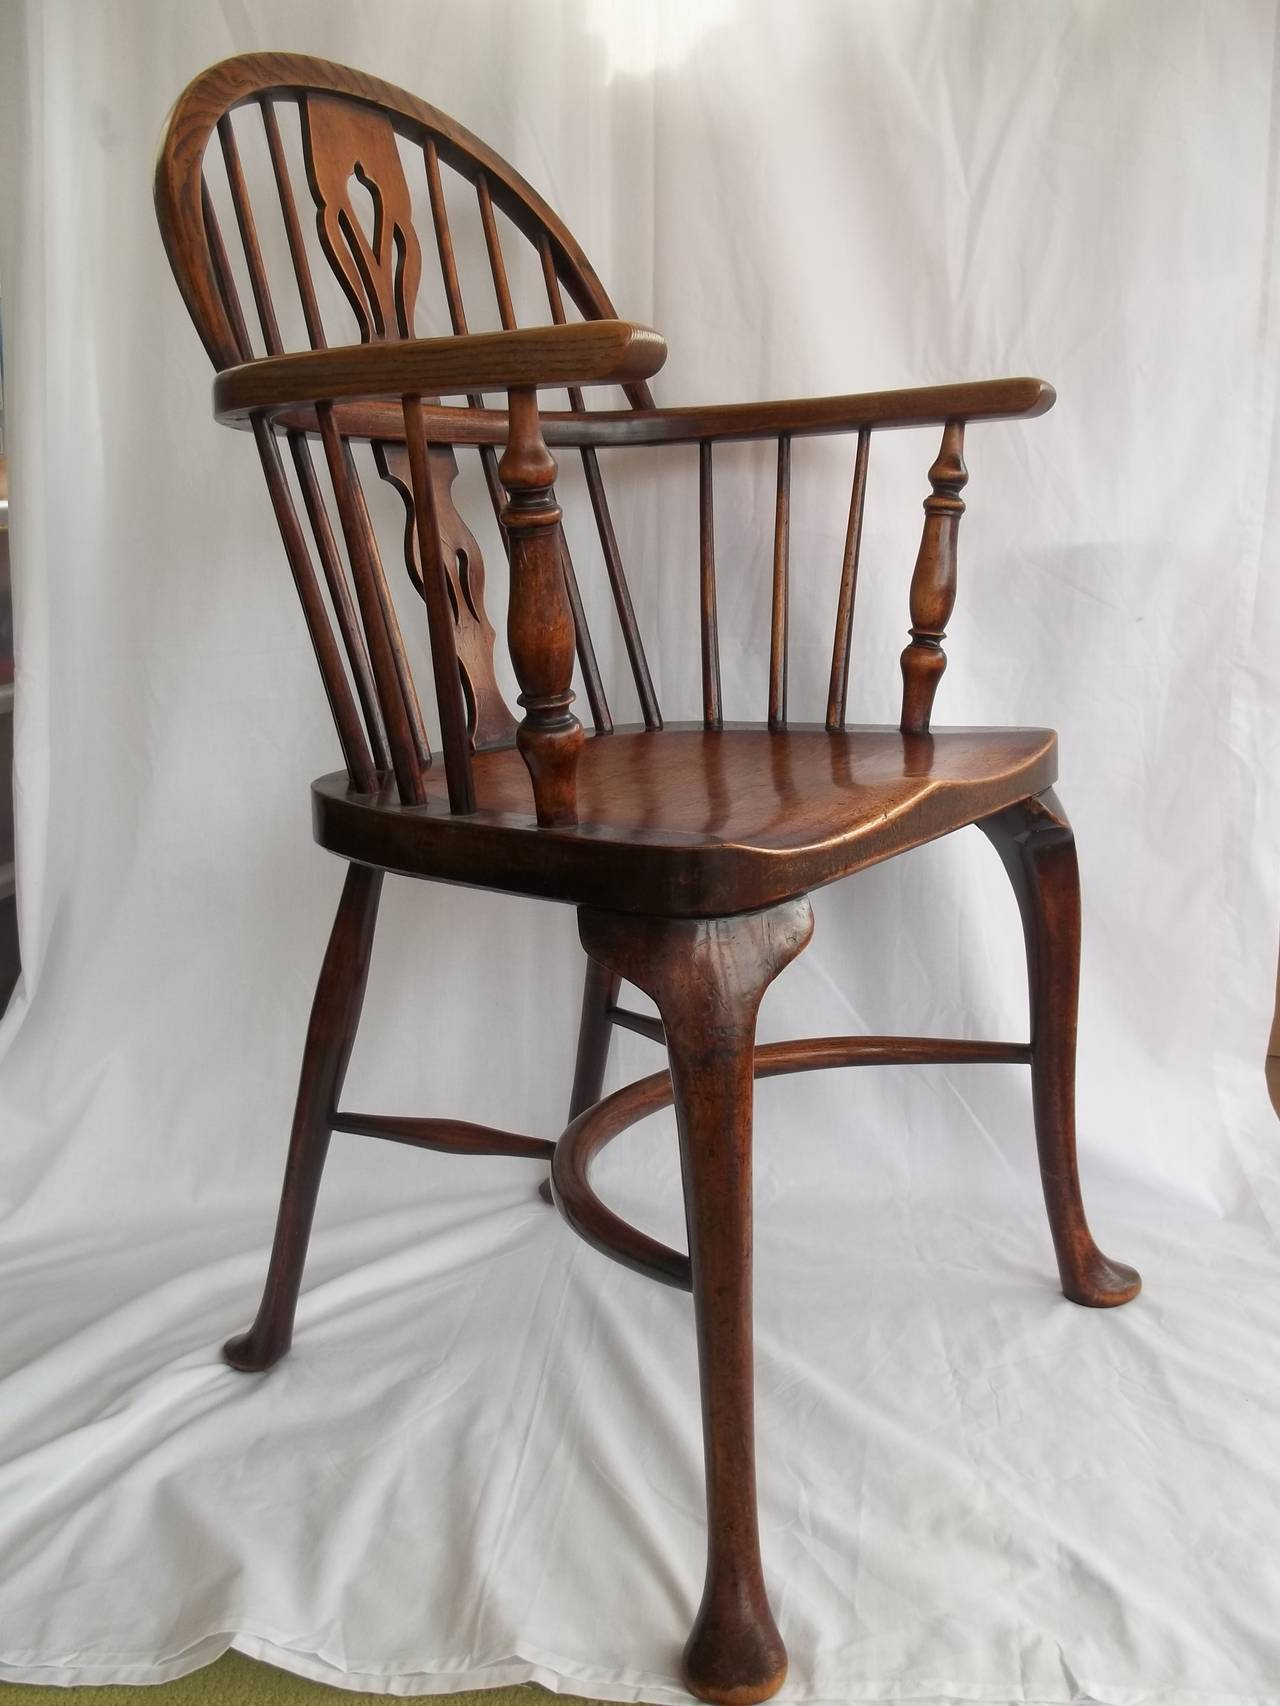 19th century low back windsor armchair with cabriole legs at 1stdibs. Black Bedroom Furniture Sets. Home Design Ideas